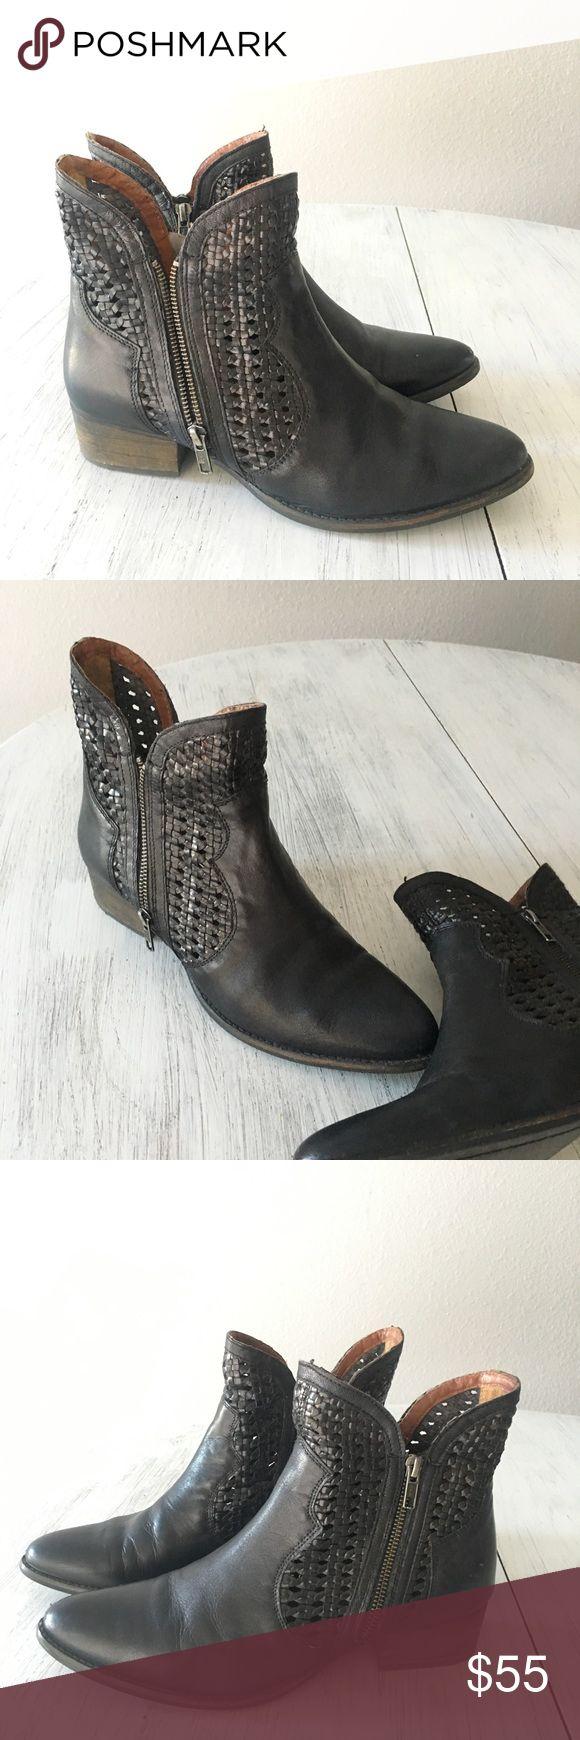 Seychelles Boots🎟 Beautiful black Lucky Penny boots by Seychelles // EUC  size 10 but fit a little on the narrow side// double zippers, heel is about 1.5 in // packaged with care & ready to ship same/next day📫💗 Seychelles Shoes Ankle Boots & Booties